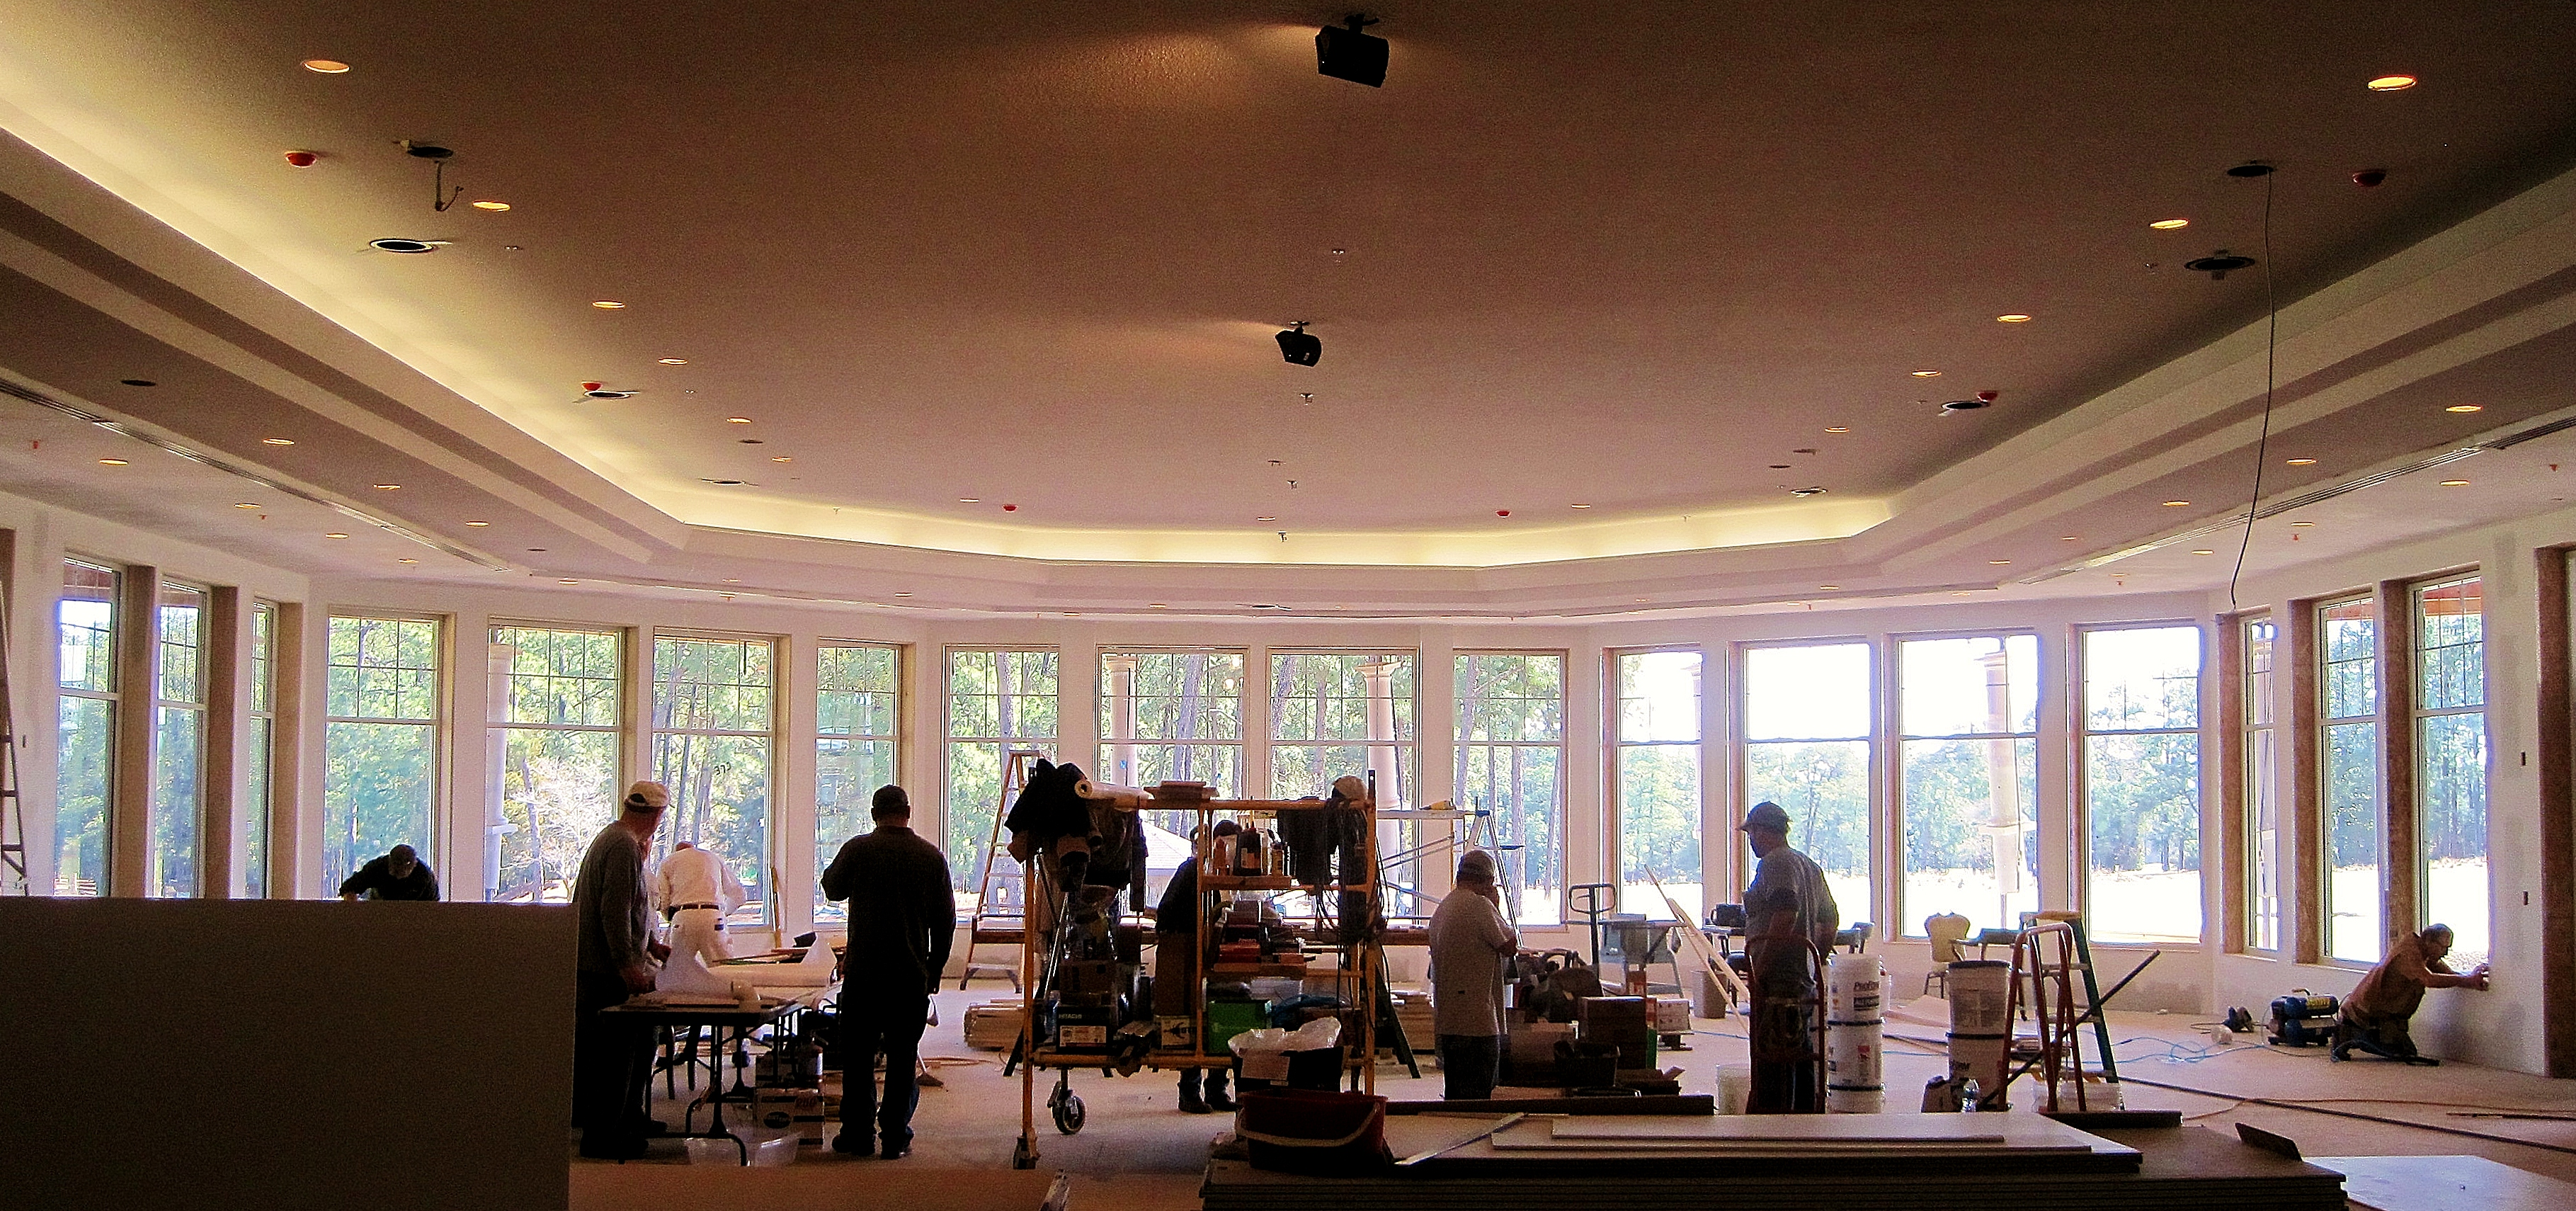 The view from inside the Pinehurst Country Club will be breathtaking - and expansive - as well.